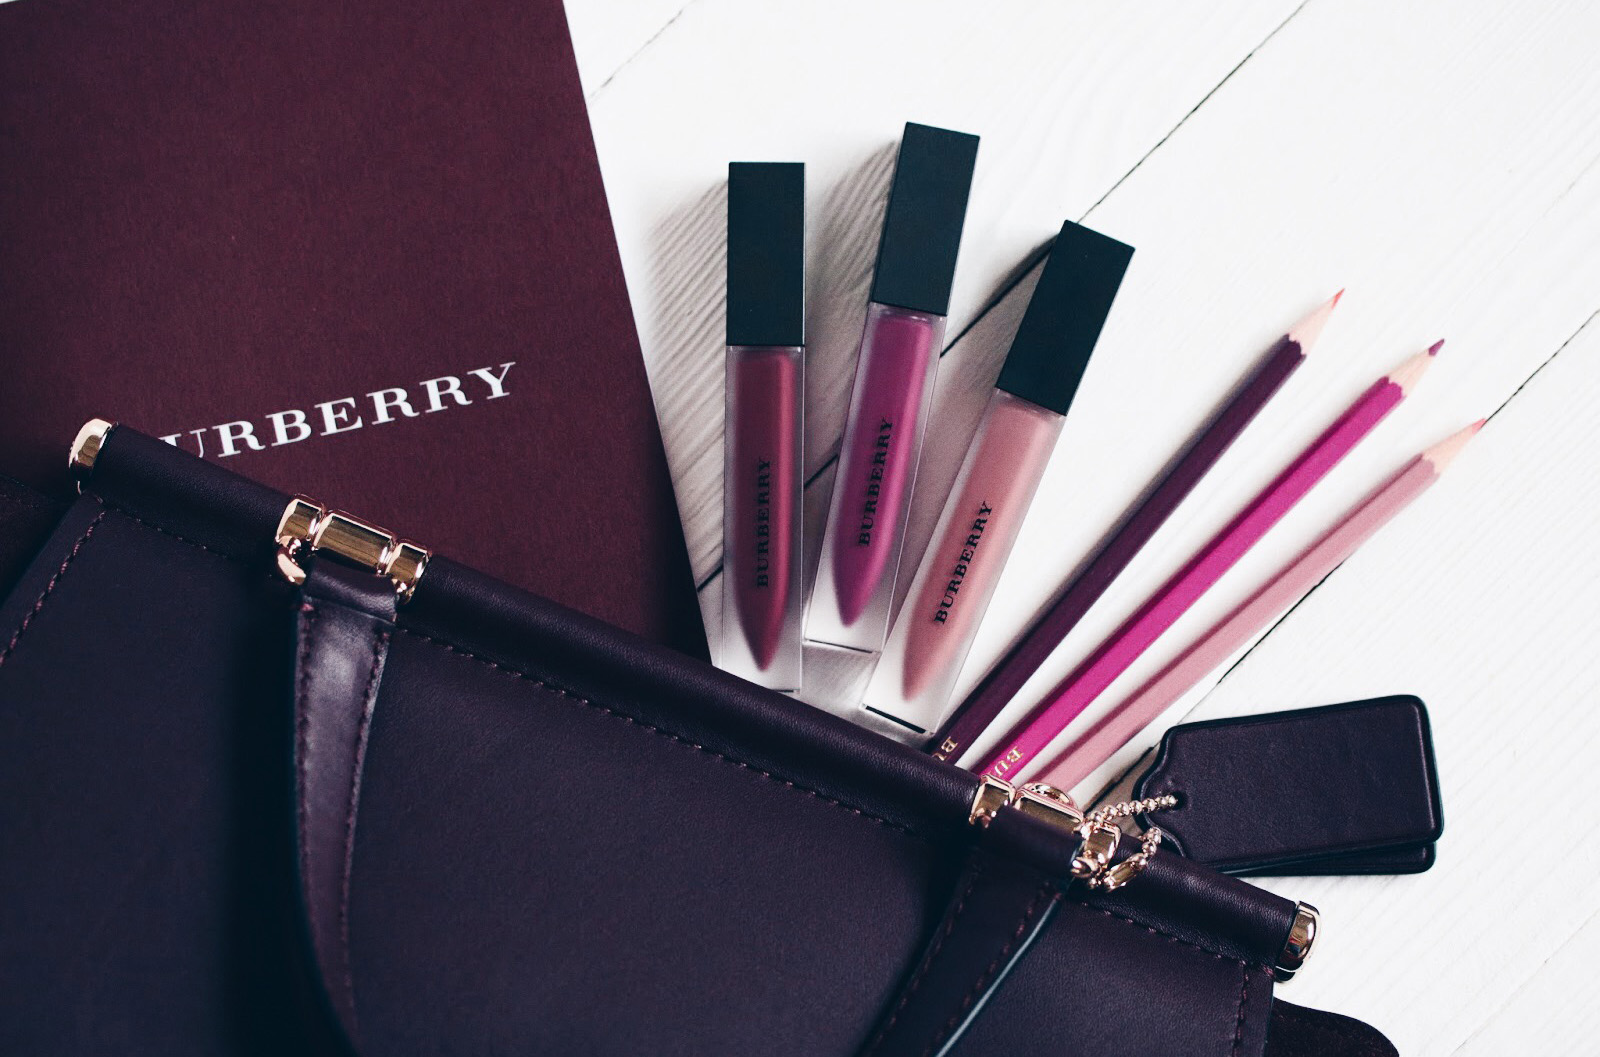 burberry liquid lip velvet rouge à lèvres mat avis test swatches